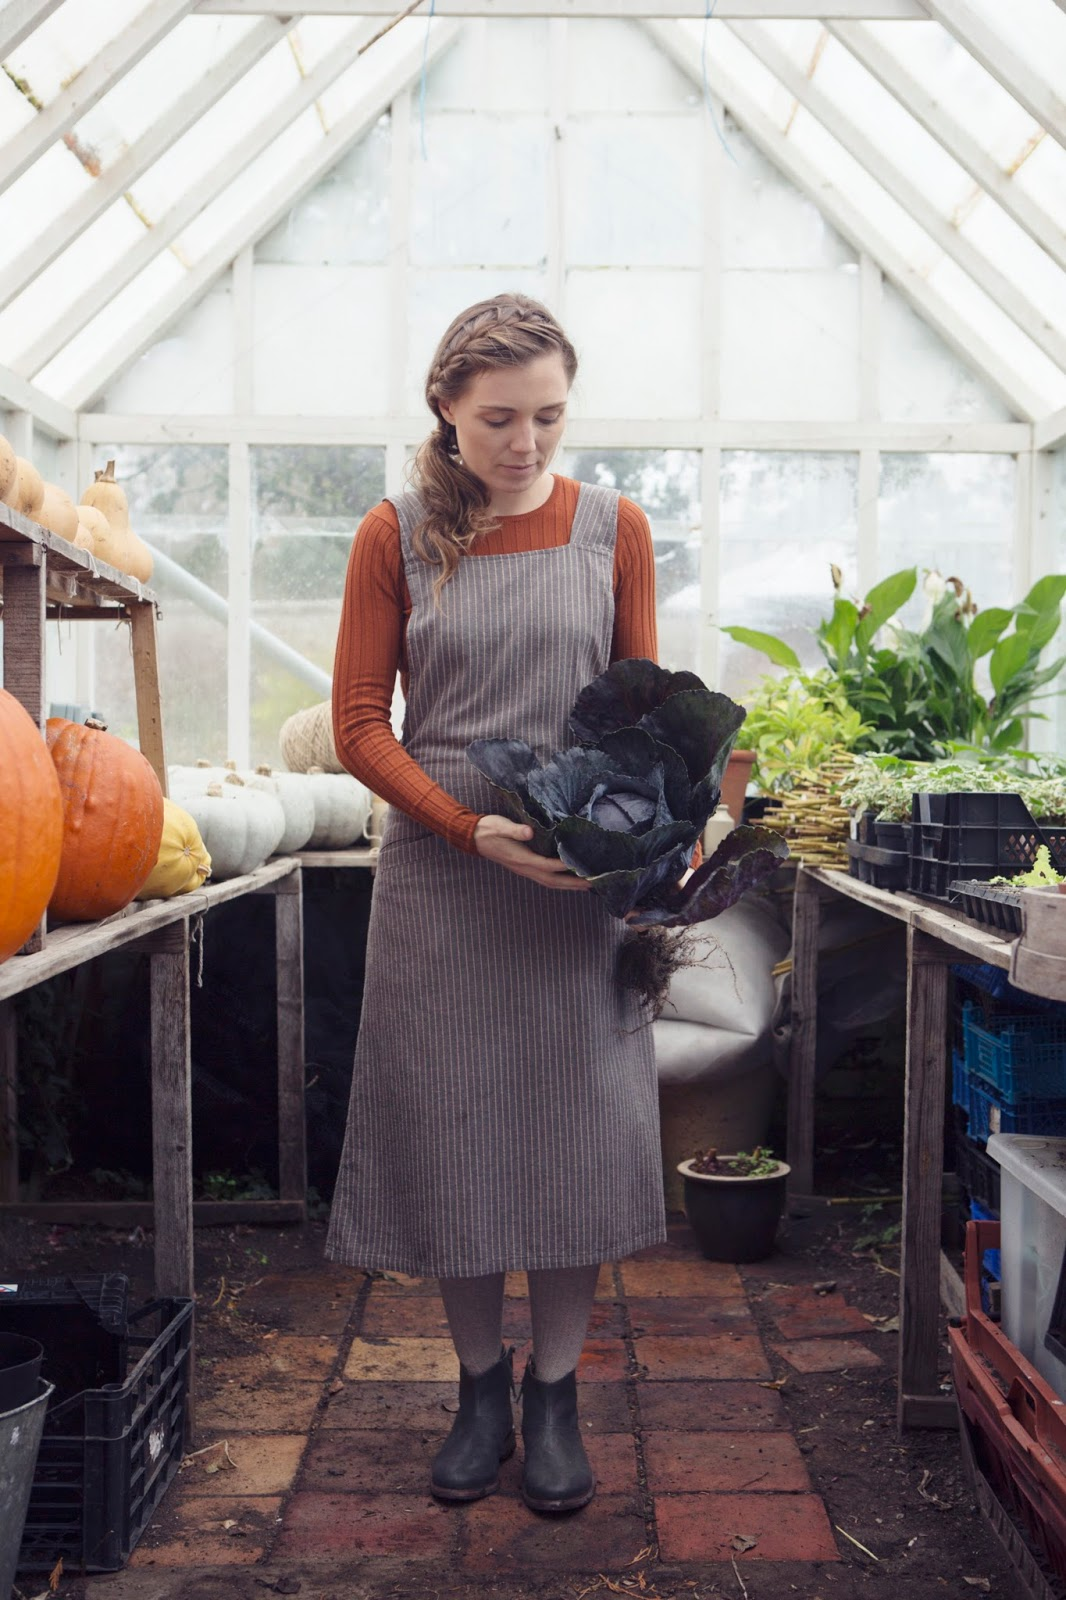 dean's court, deans court, eco, ethical, organic, greenhouse, aprons, empowerment, vegetables